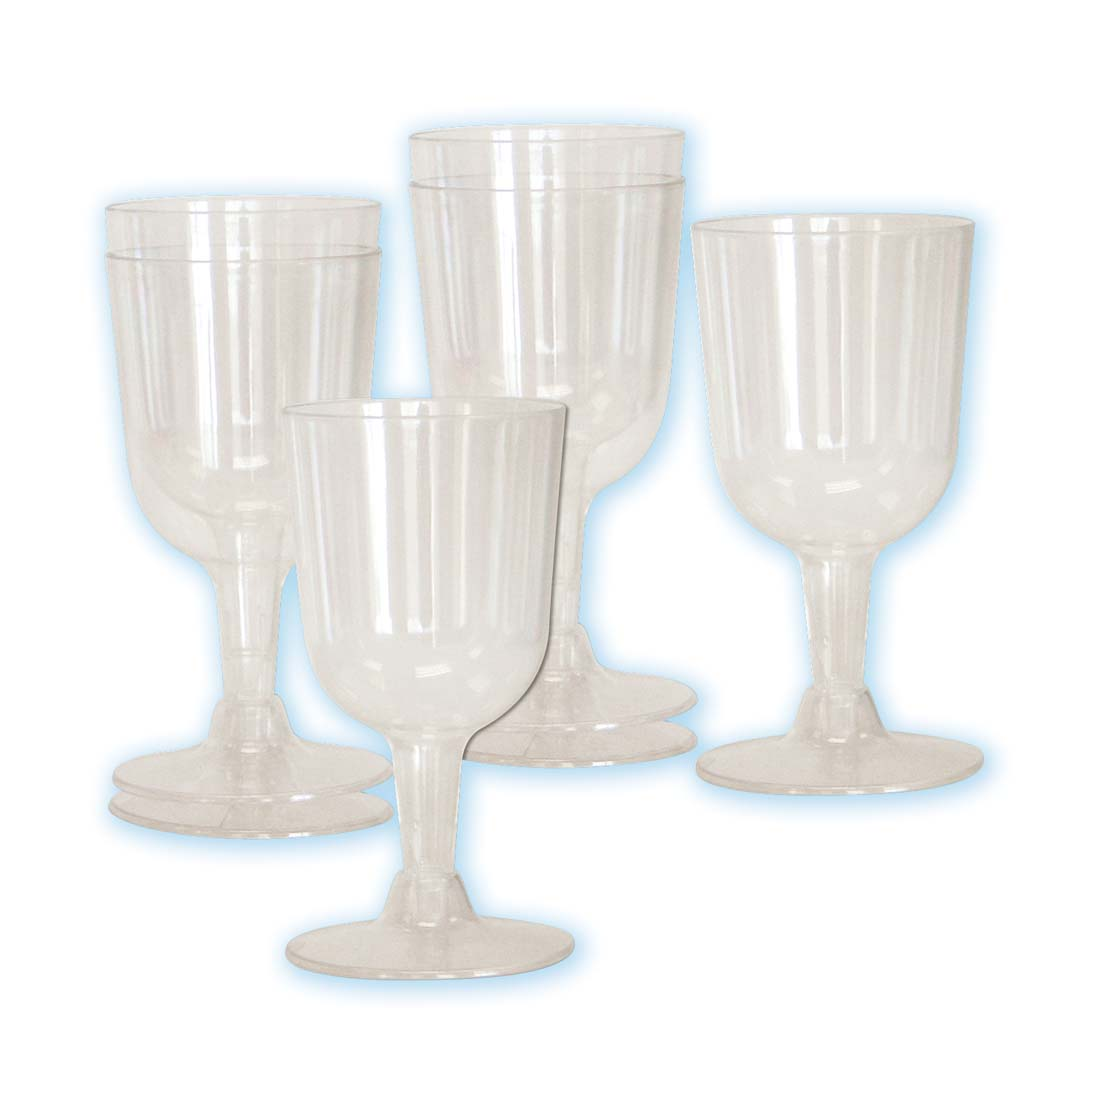 View PLASTIC WINE GLASS 6 CT 5 OZ CLEAR